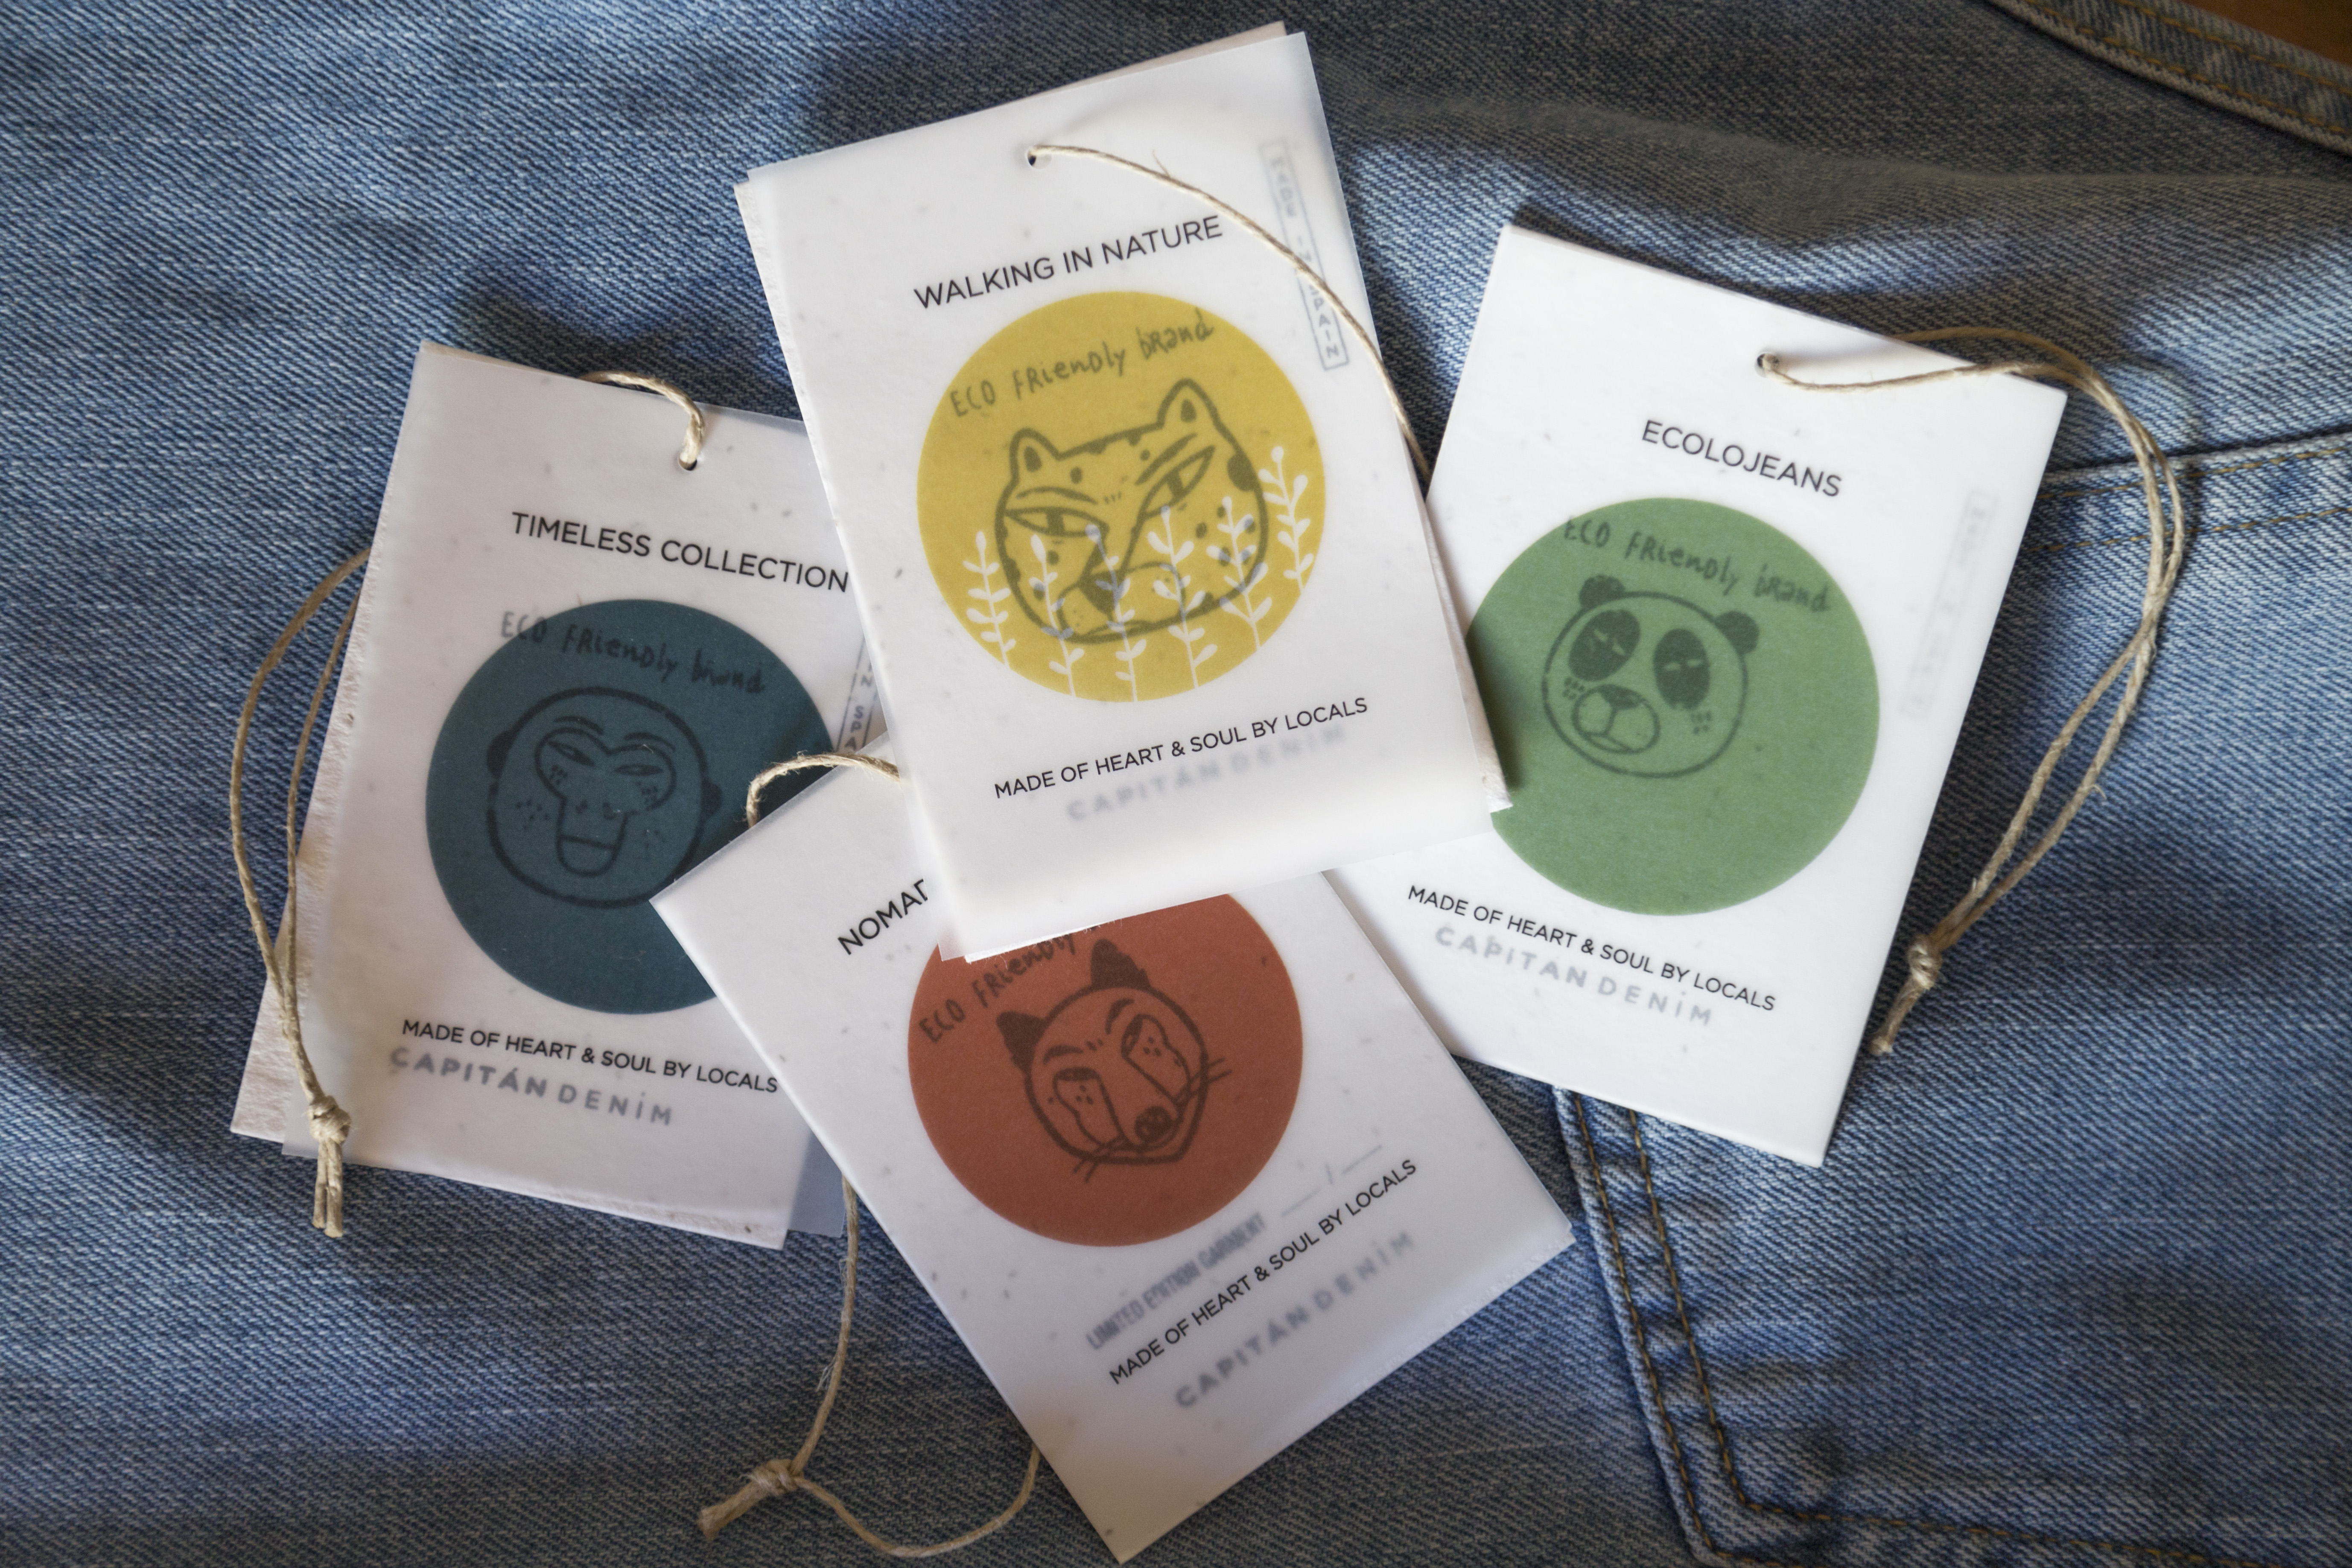 Capitan Denim green labels.